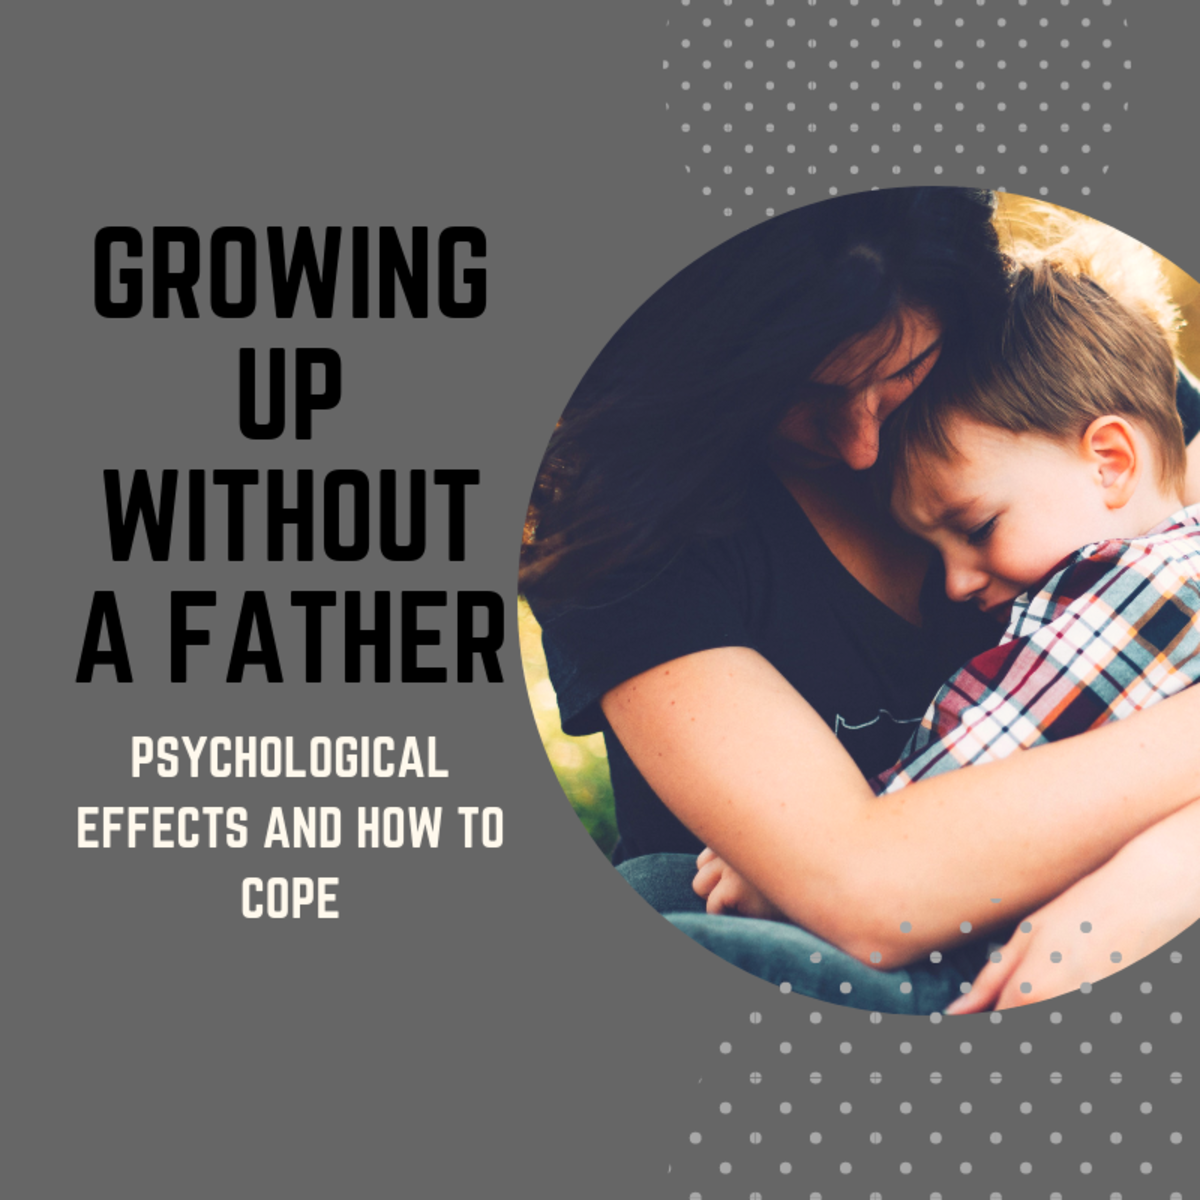 psychological effects of growing up without a father owlcationfatherless children are at risk